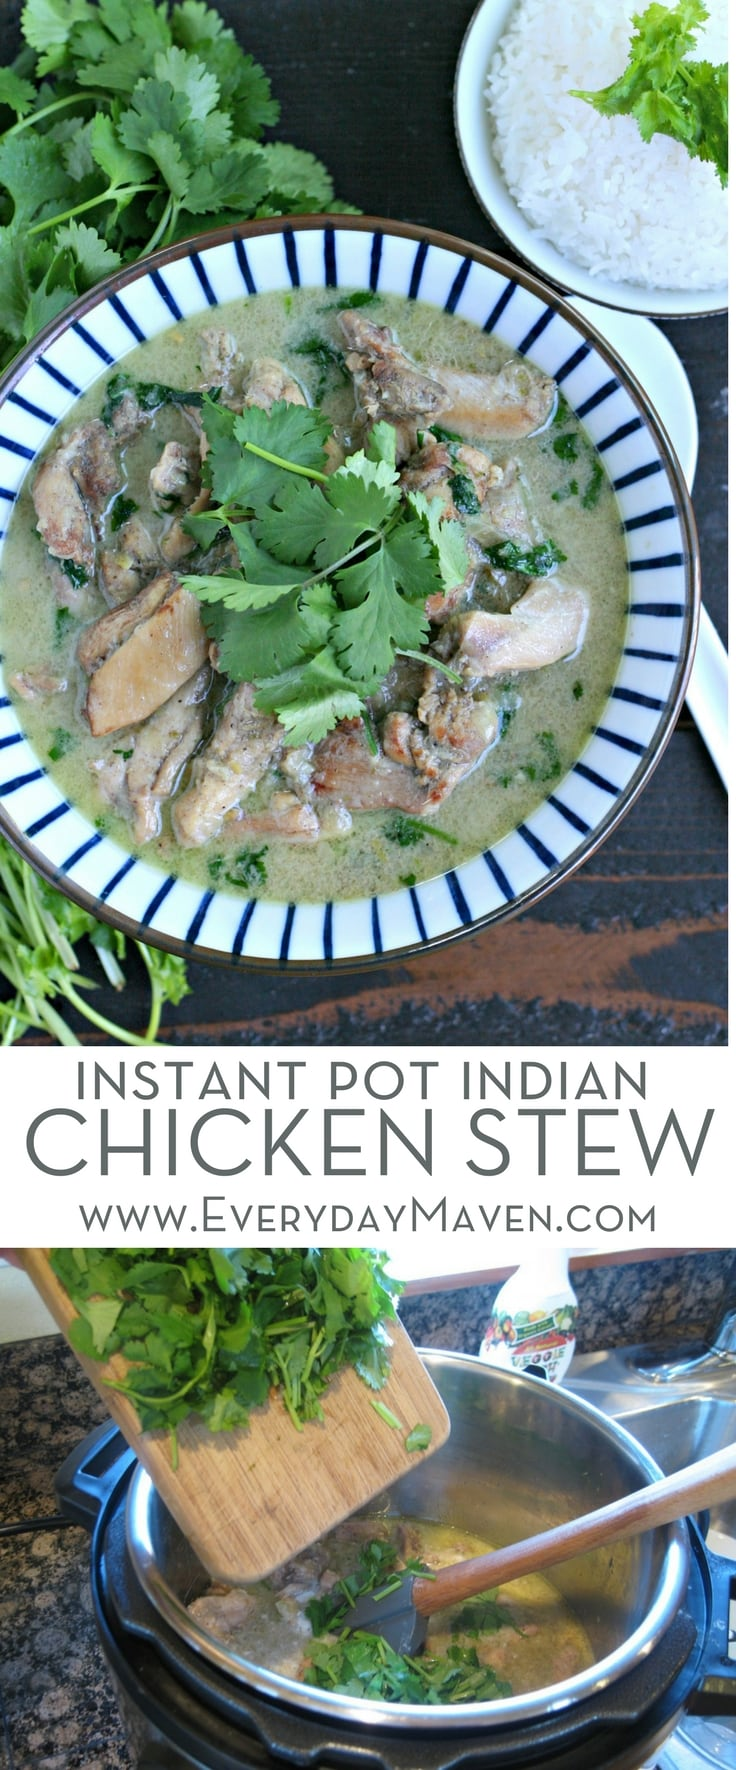 This dairy free Indian Chicken Stew is on the table in under an hour on the stove OR in under 15 minutes in the Instant Pot. Loaded with flavor and excellent served over jasmine rice or cauliflower rice, this is a dish the whole family will love!